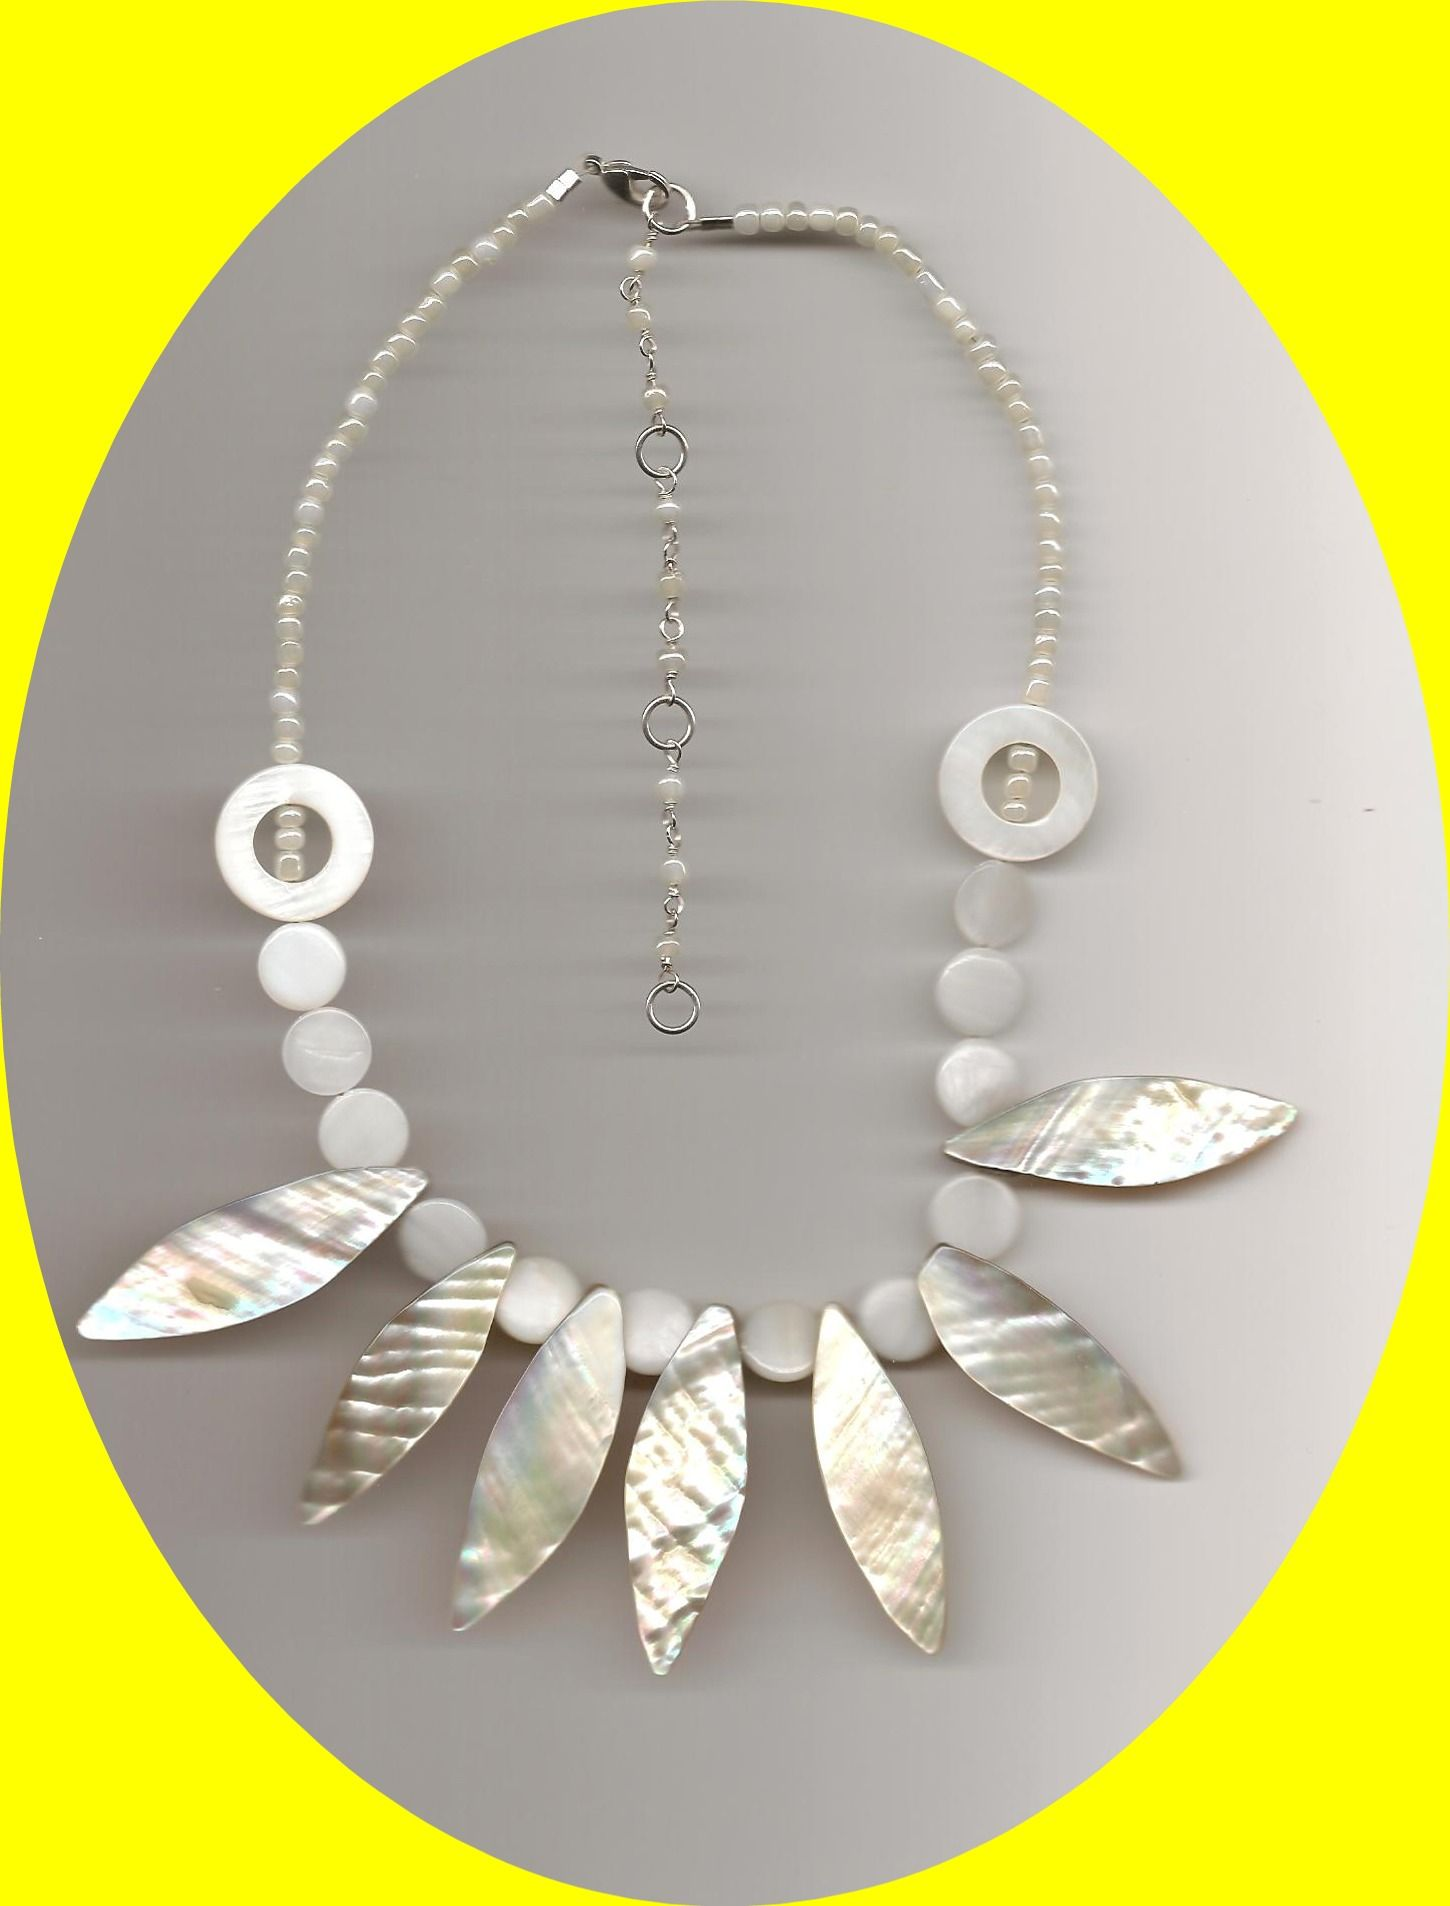 EDE Mother of Pearl Elongated Shell Necklace http://www.edenterprises.biz/MOP%20Elongated%20Shell%20Necklace2.jpg